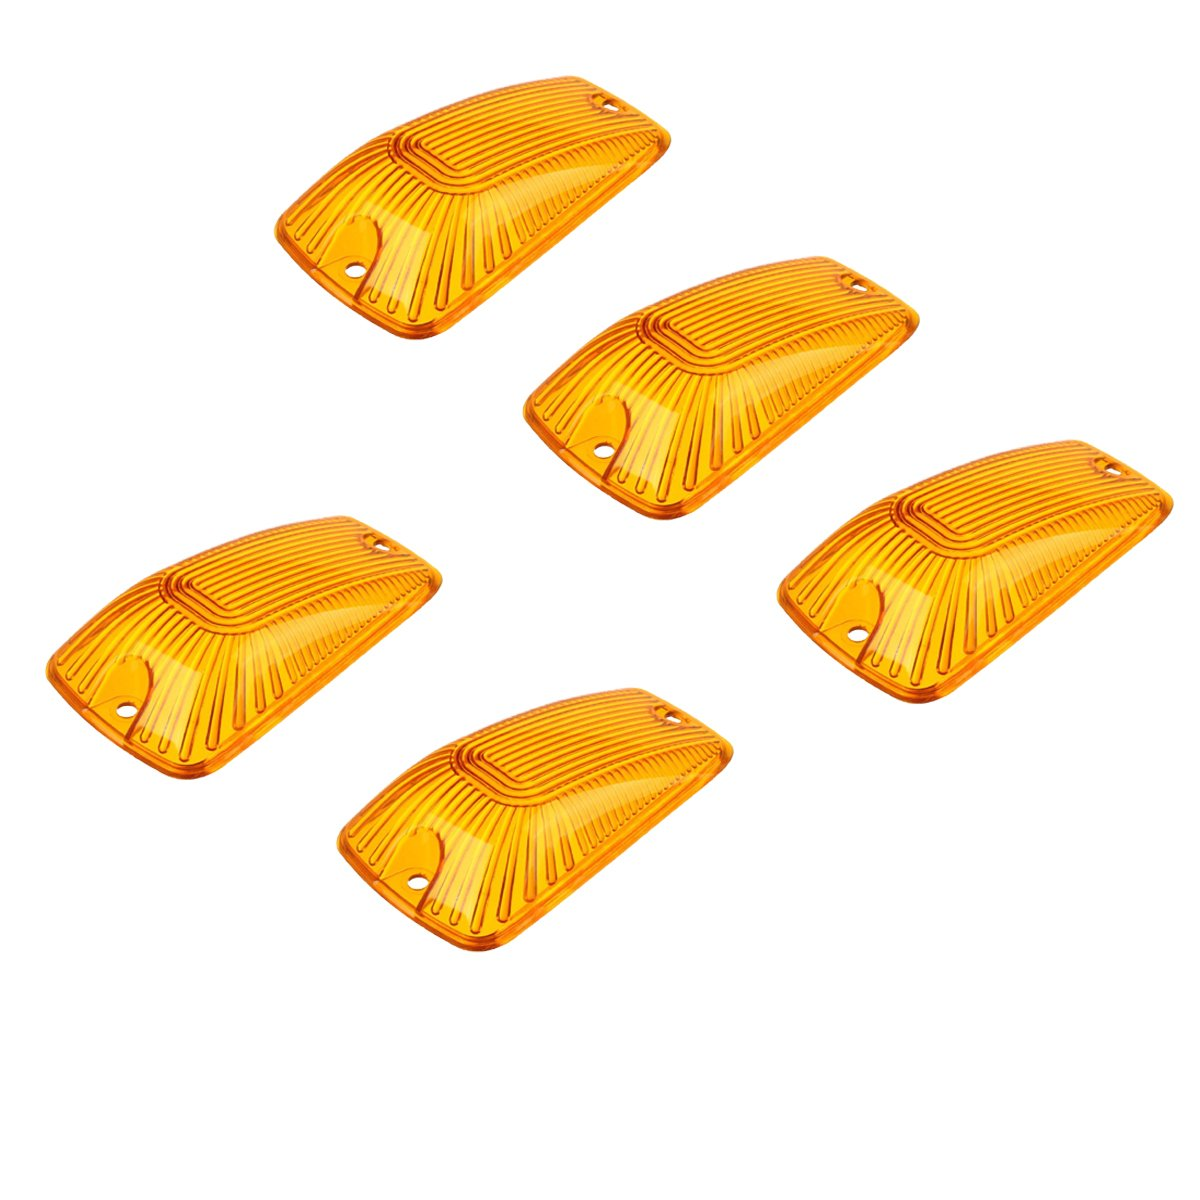 Cab Marker Lights Lens,Top Roof Clearance Lights Cover for Ford E-150//250//350//450//550 F-150//250//350//450//550 Super duty,Pack of 5 Amber